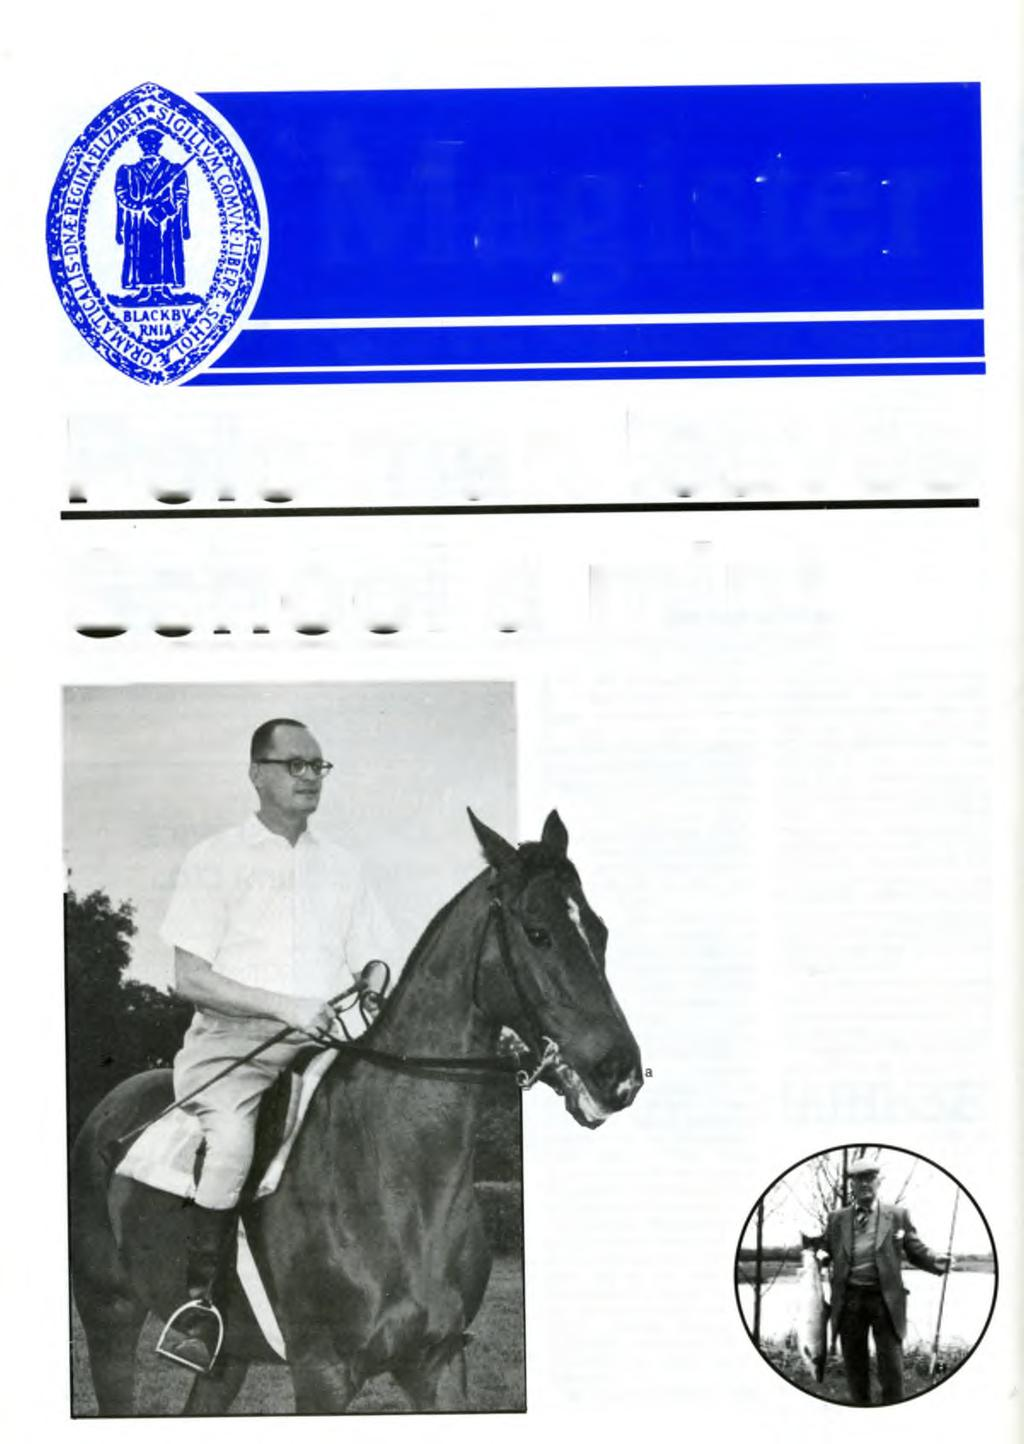 Magister Journal of the Old Blackburnians Association Polo man leaves School a mint E r ic c o r l e s s (1925-30) left over 250 000 to the School in his will.